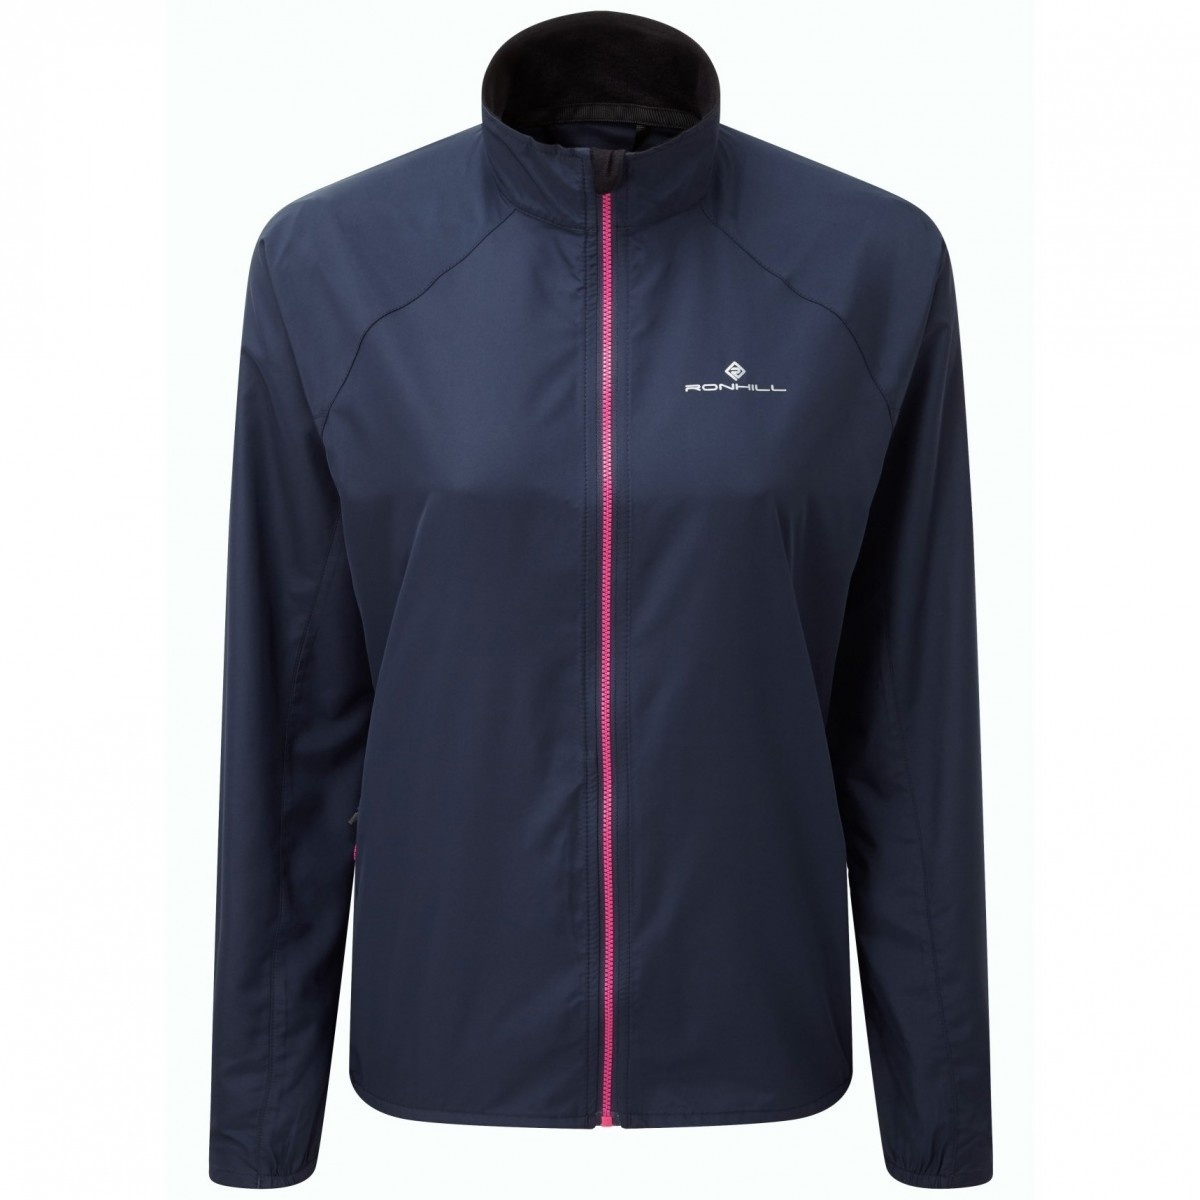 RONHILL RONHILL EVERYDAY JACKET WOMENS